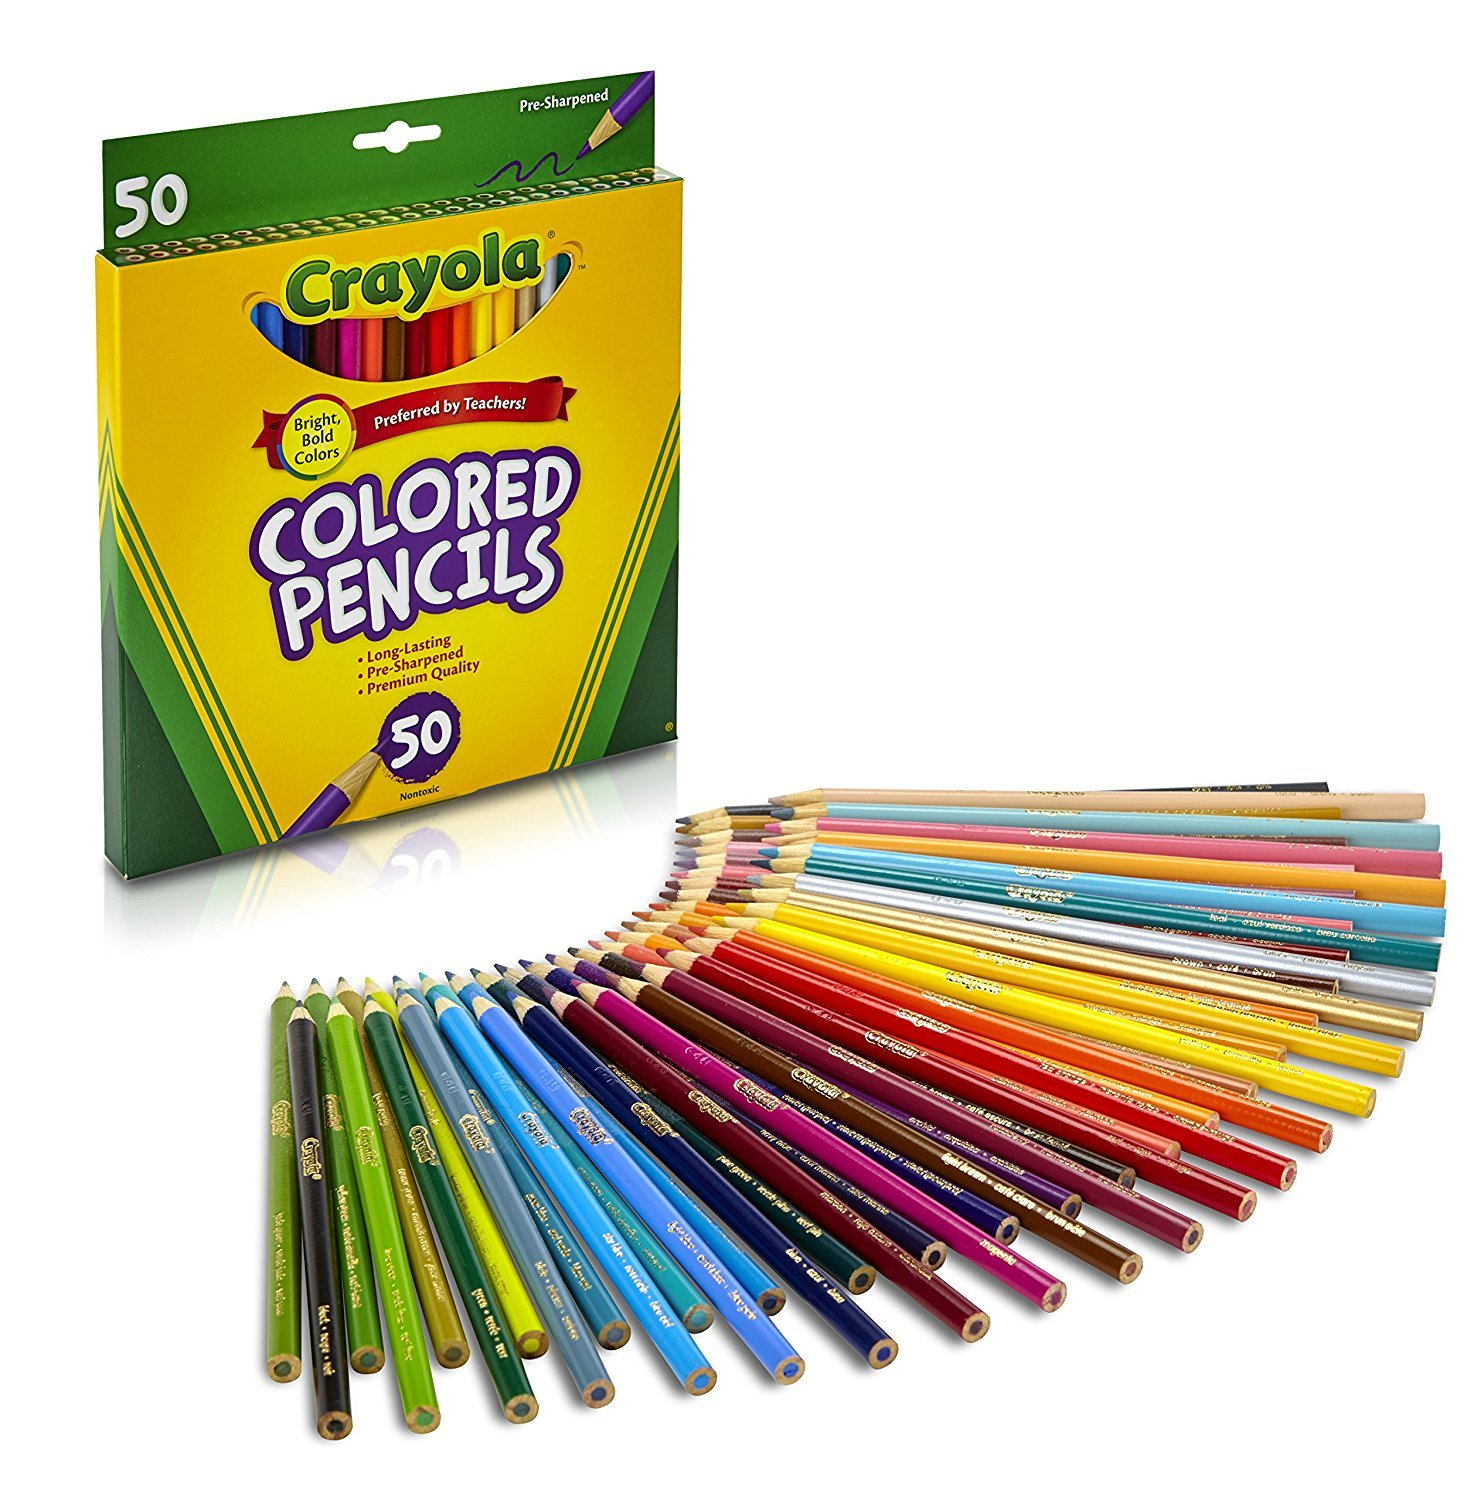 Amazon.com: Crayola Colored Pencils, 50 Count, Adult Coloring: Arts ...